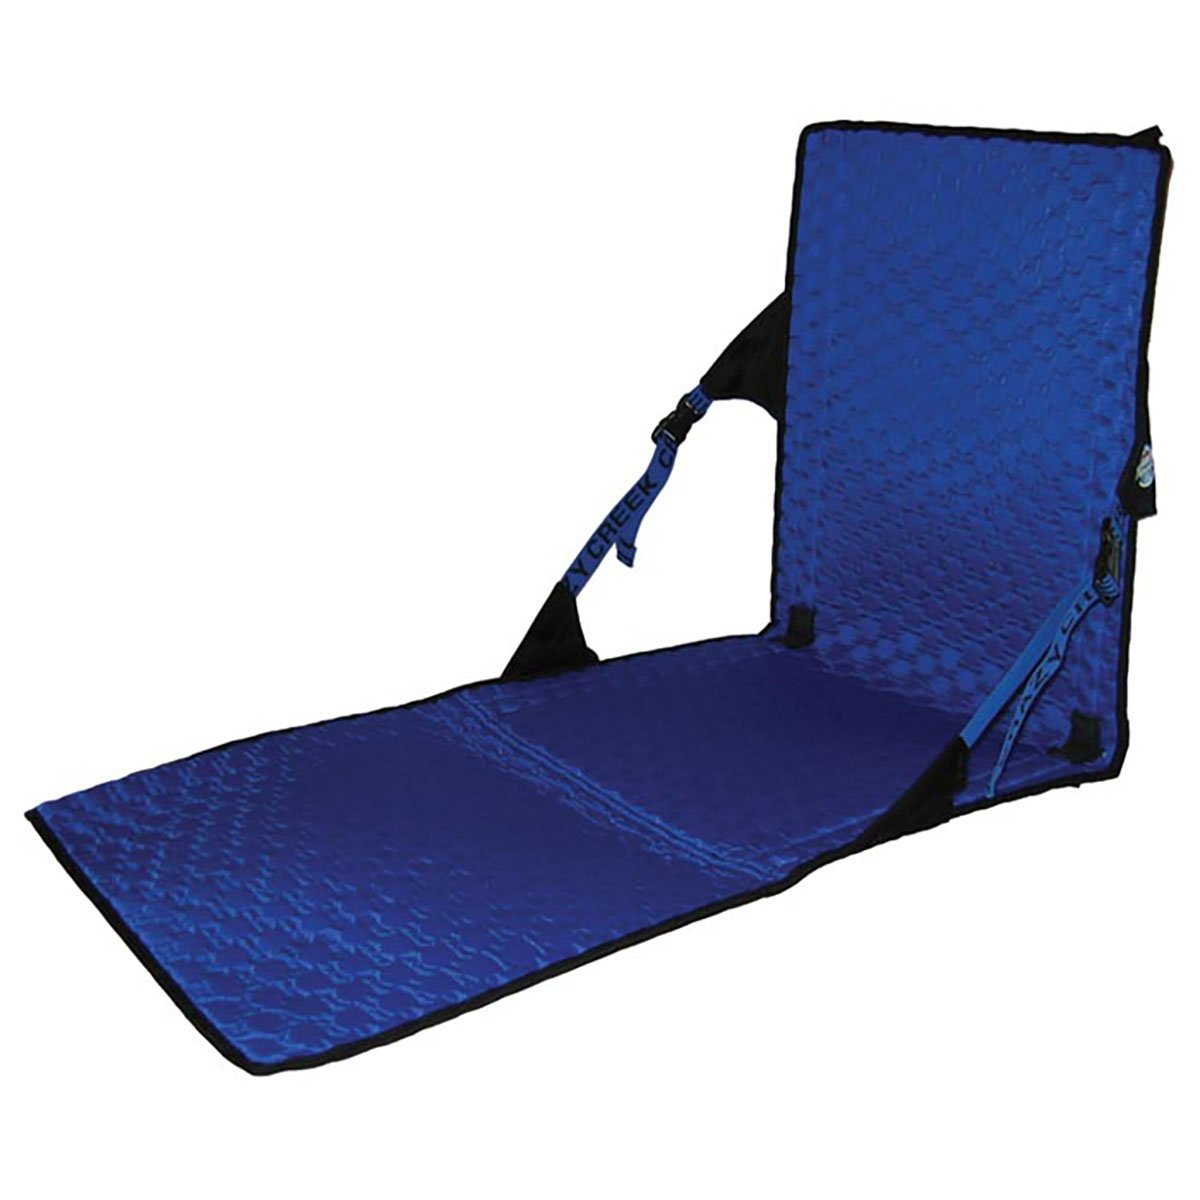 Crazy Creek Products HEX 2.0 Chair